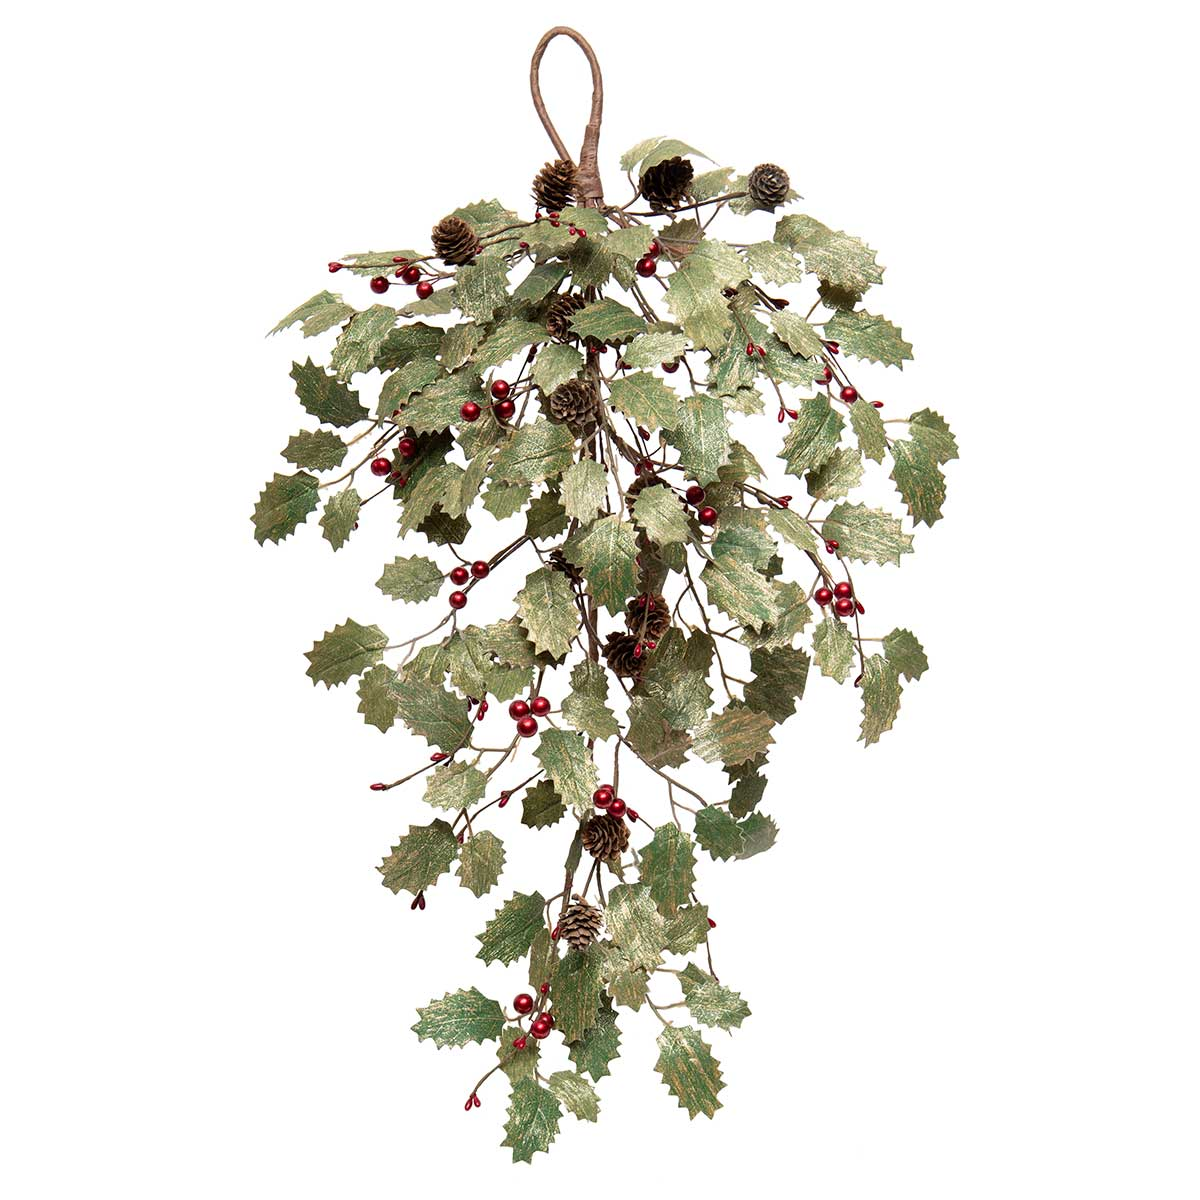 METALLIC HOLLY BOUGH WITH RED